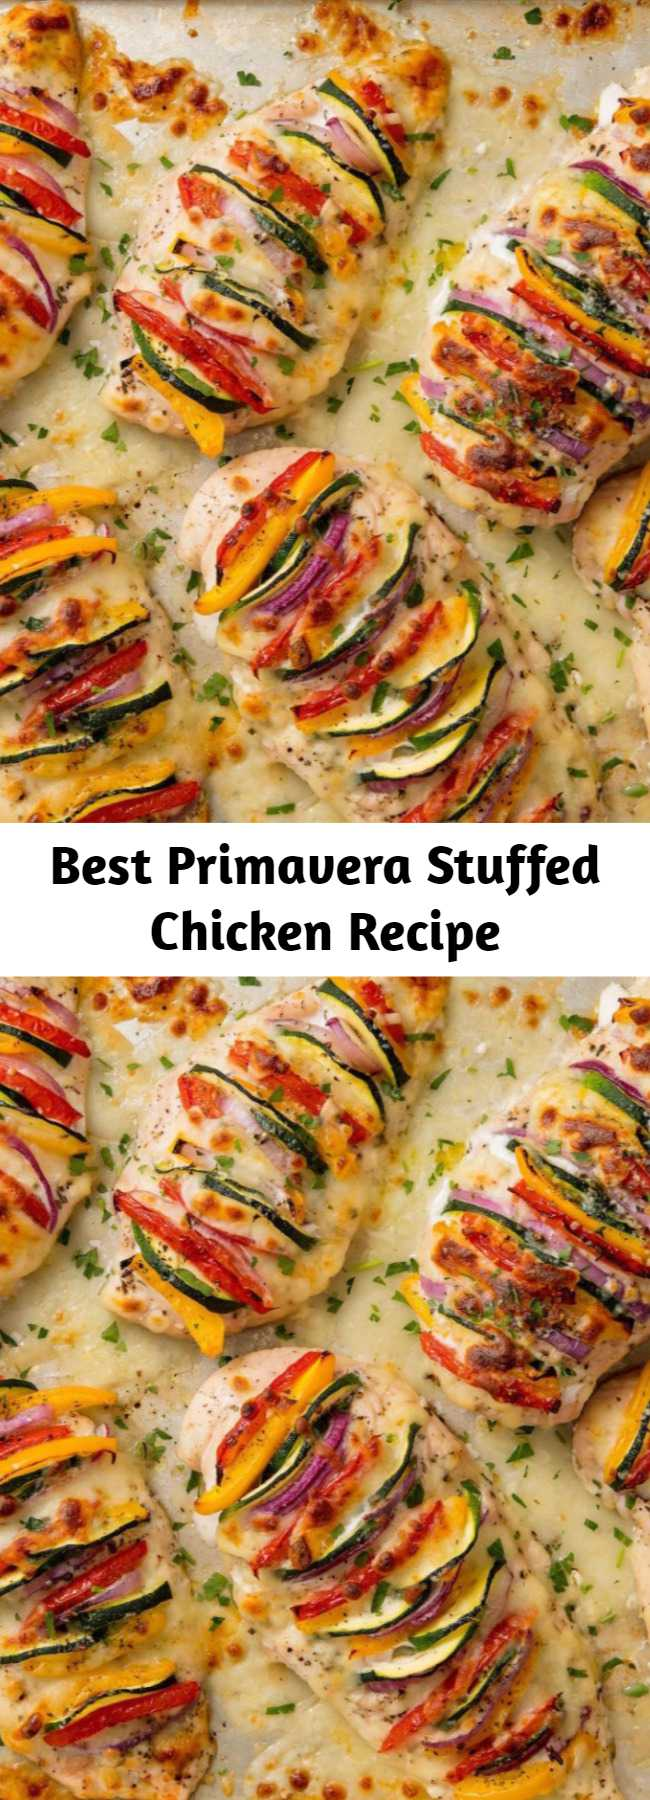 Best Primavera Stuffed Chicken Recipe - This is the opposite of boring, flavorless chicken breast. It's literally packed with colorful flavor. Bonus: It's insanely good for you! It's sooo pretty.